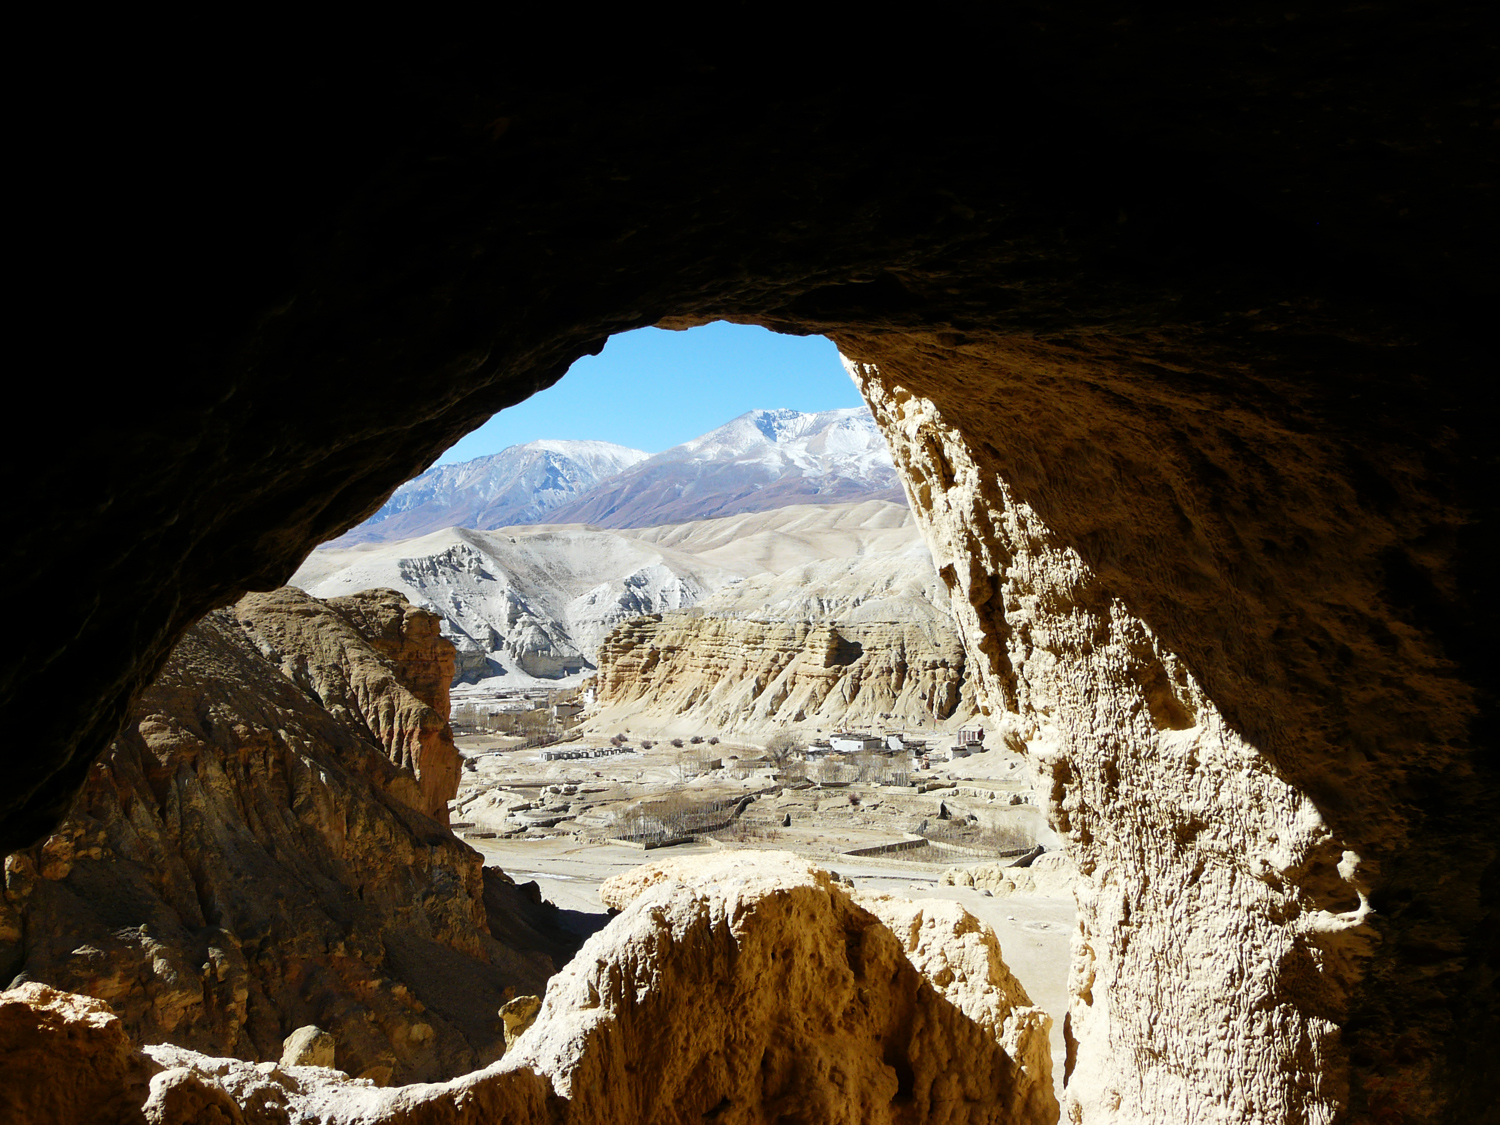 One of the World's Greatest Archaeological Mysteries has been Discovered Deep within the Himalayas in Nepal Lo-manthang-seen-from-inside-high-cave-upper-mustang